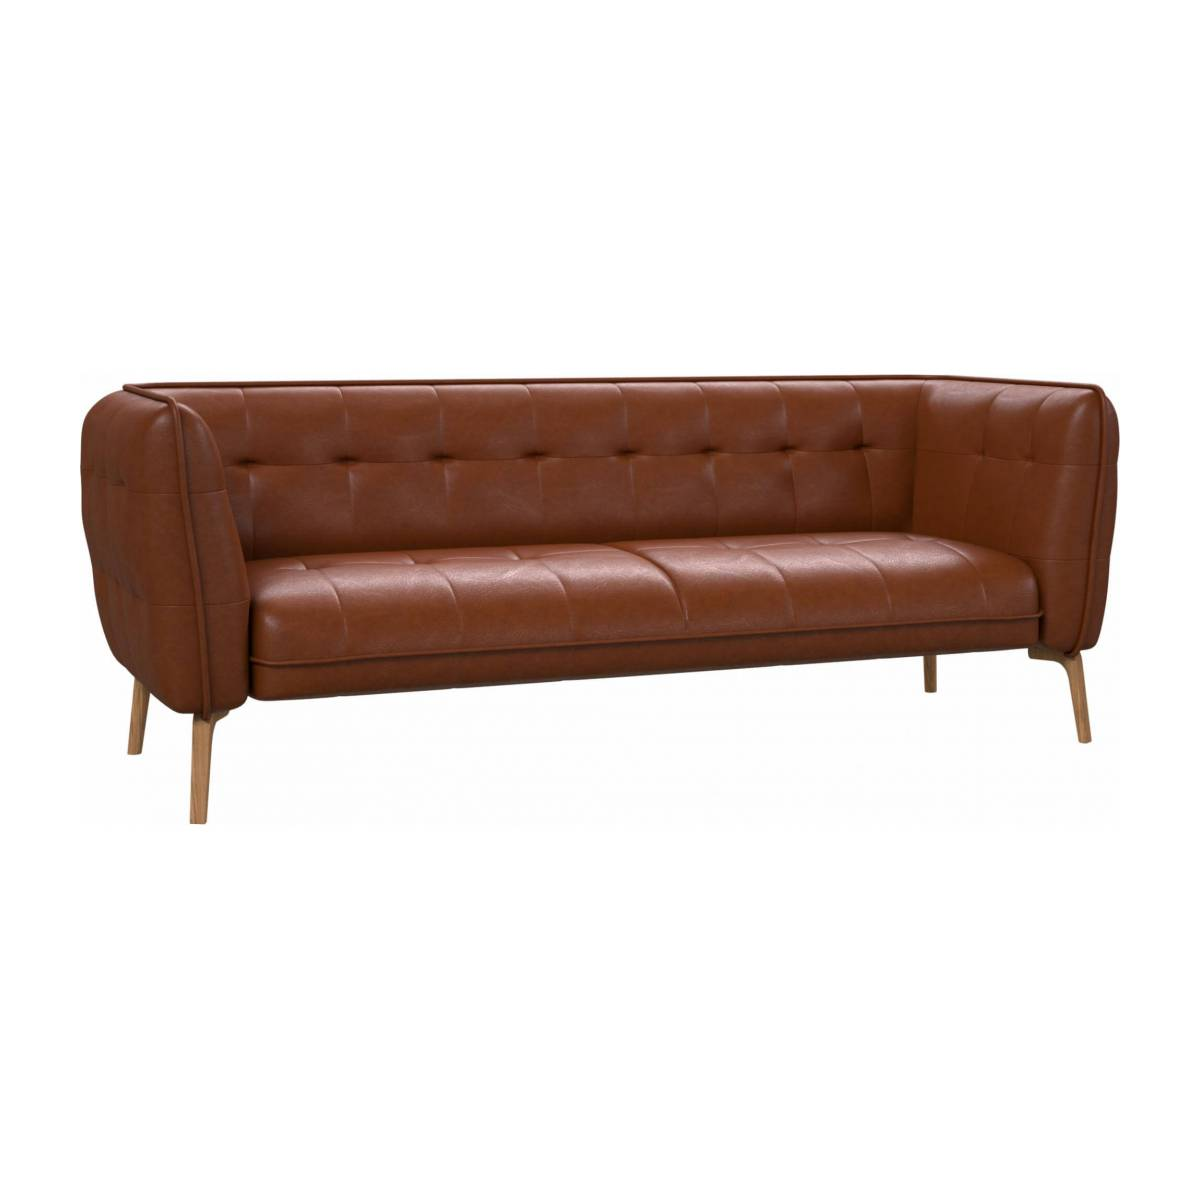 3 seater sofa in Vintage aniline leather, old chestnut and natural oak feet n°2